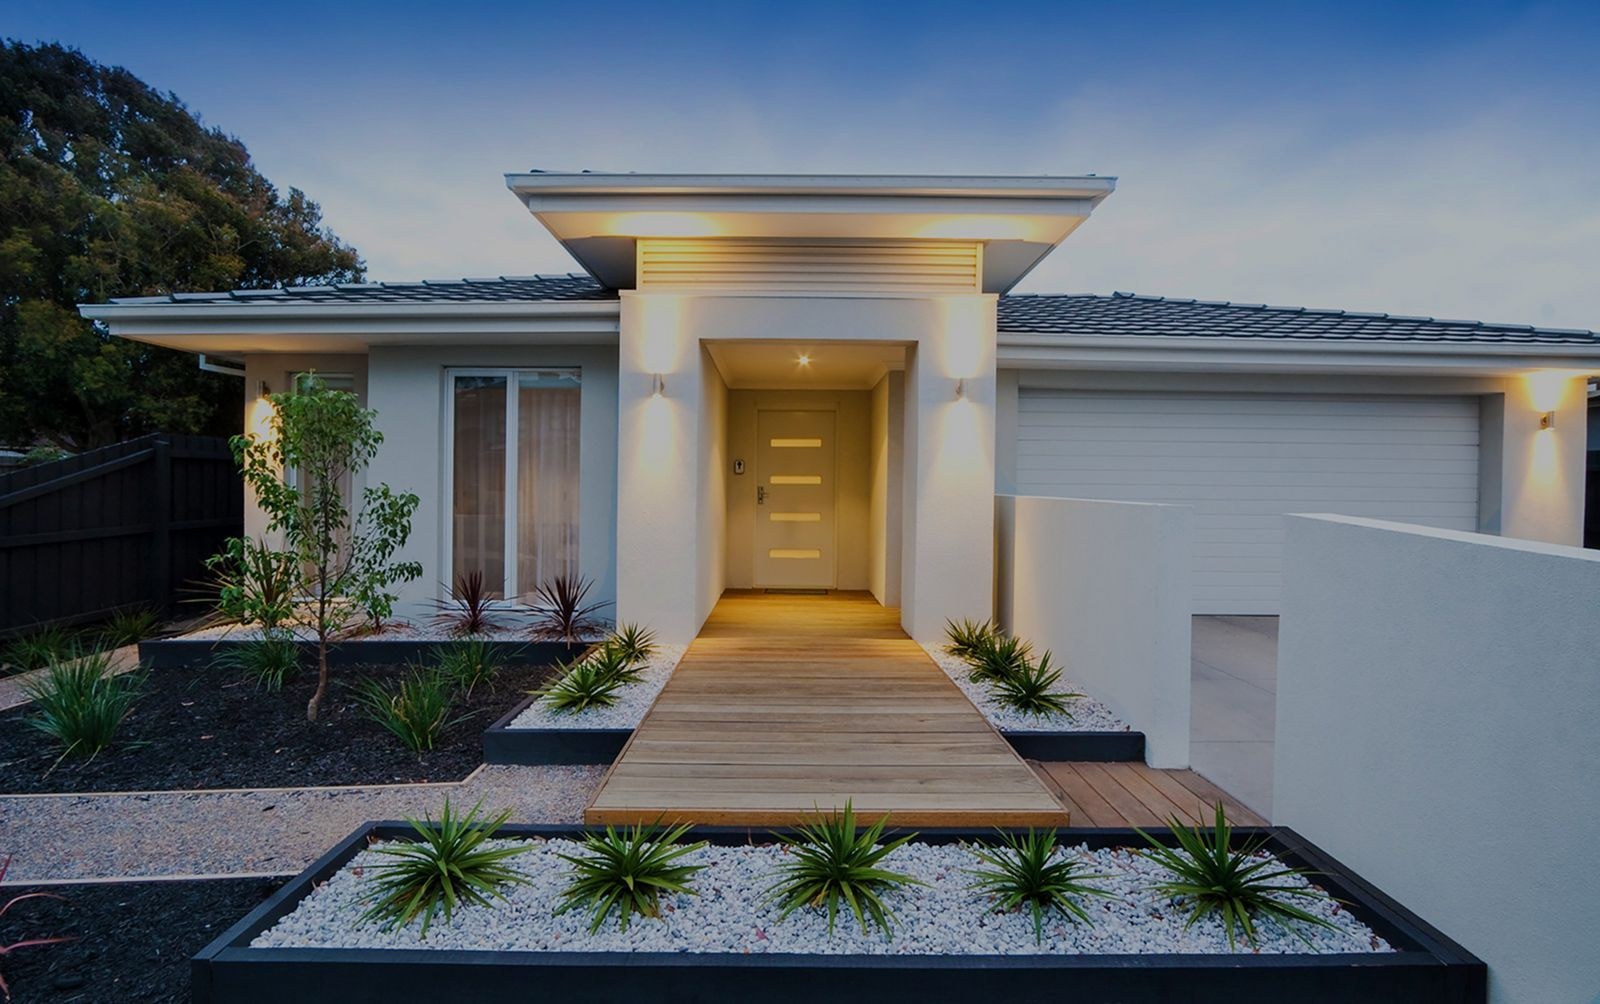 12 Minimalist Front Garden Design Ideas To Inspire You Awesome Indoor Outdoor Modern Front Yard Modern Landscaping Front Yard Design Modern front yard landscaping ideas australia